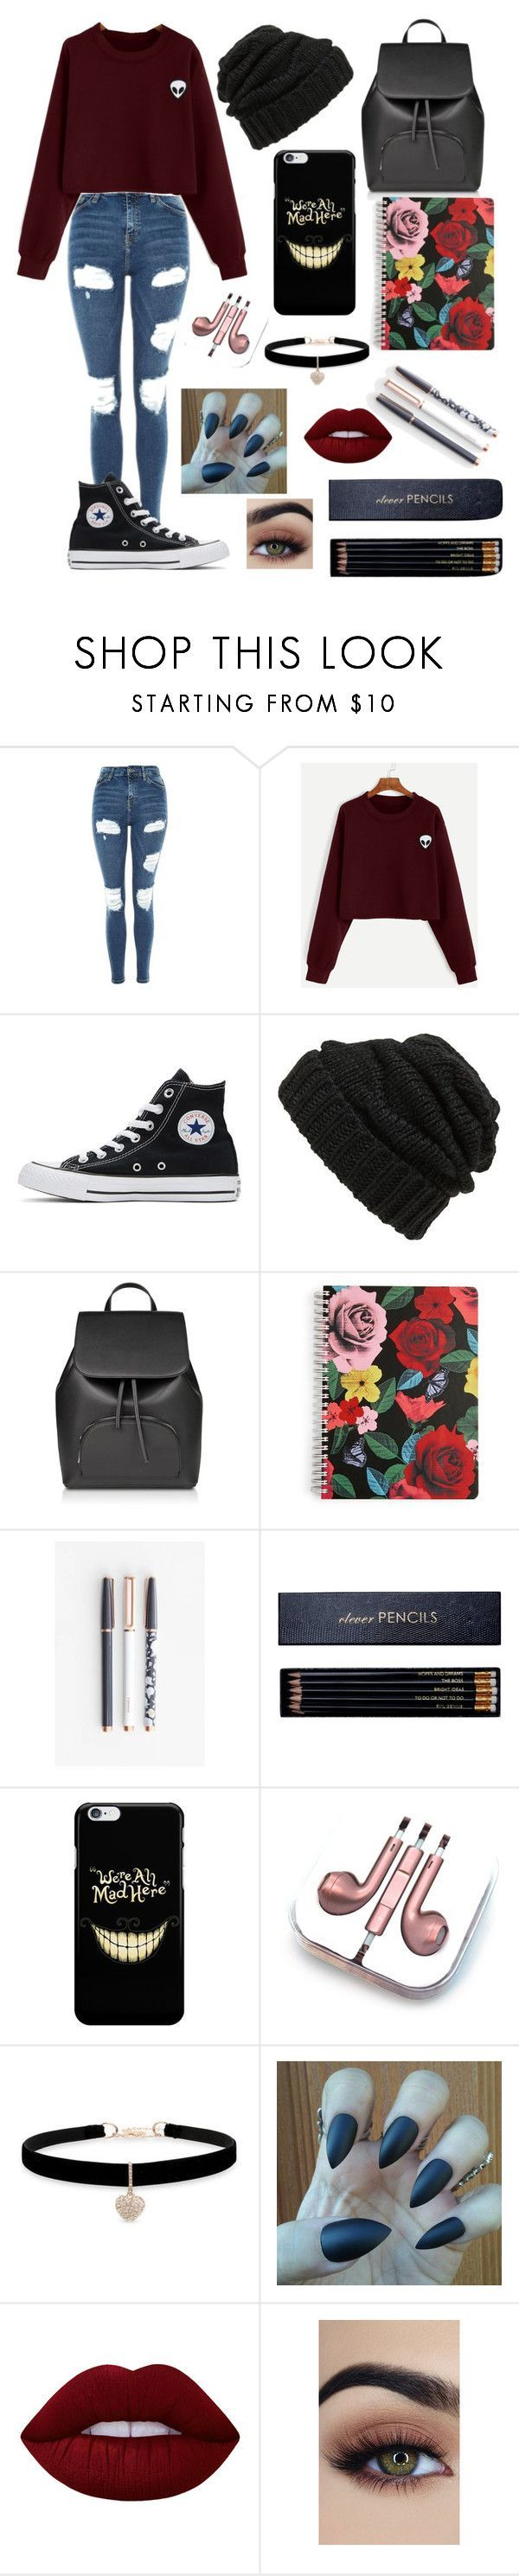 """"" by aesthetic-fashion on Polyvore featuring Topshop, Converse, Leith, Vera Bradley, U Brands, Sloane Stationery, PhunkeeTree, Betsey Johnson and Lime Crime"